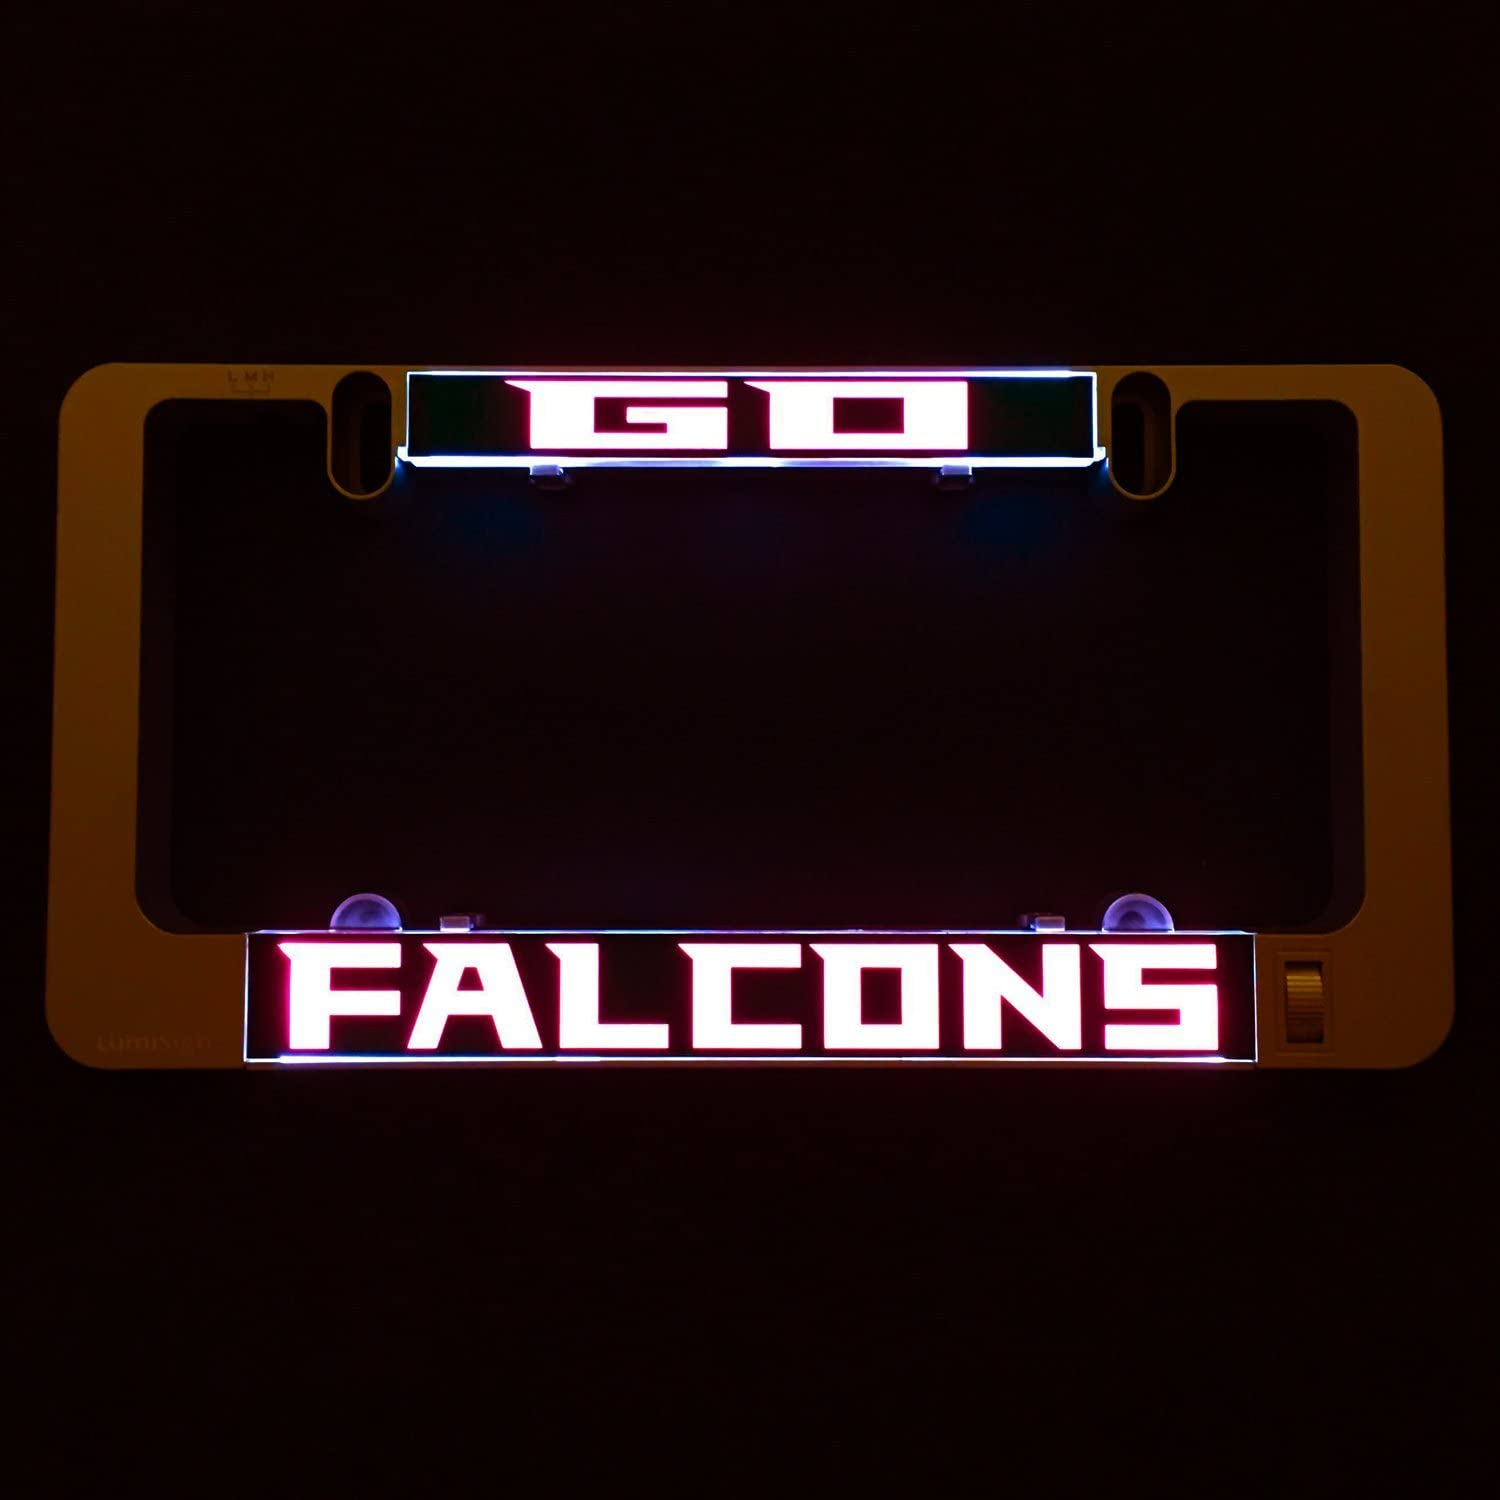 Battery Operated LumiSign The Auto Illuminated License Plate Frame Lights Up While You Brake Installs in Seconds No Wires Interchangeable Inserts